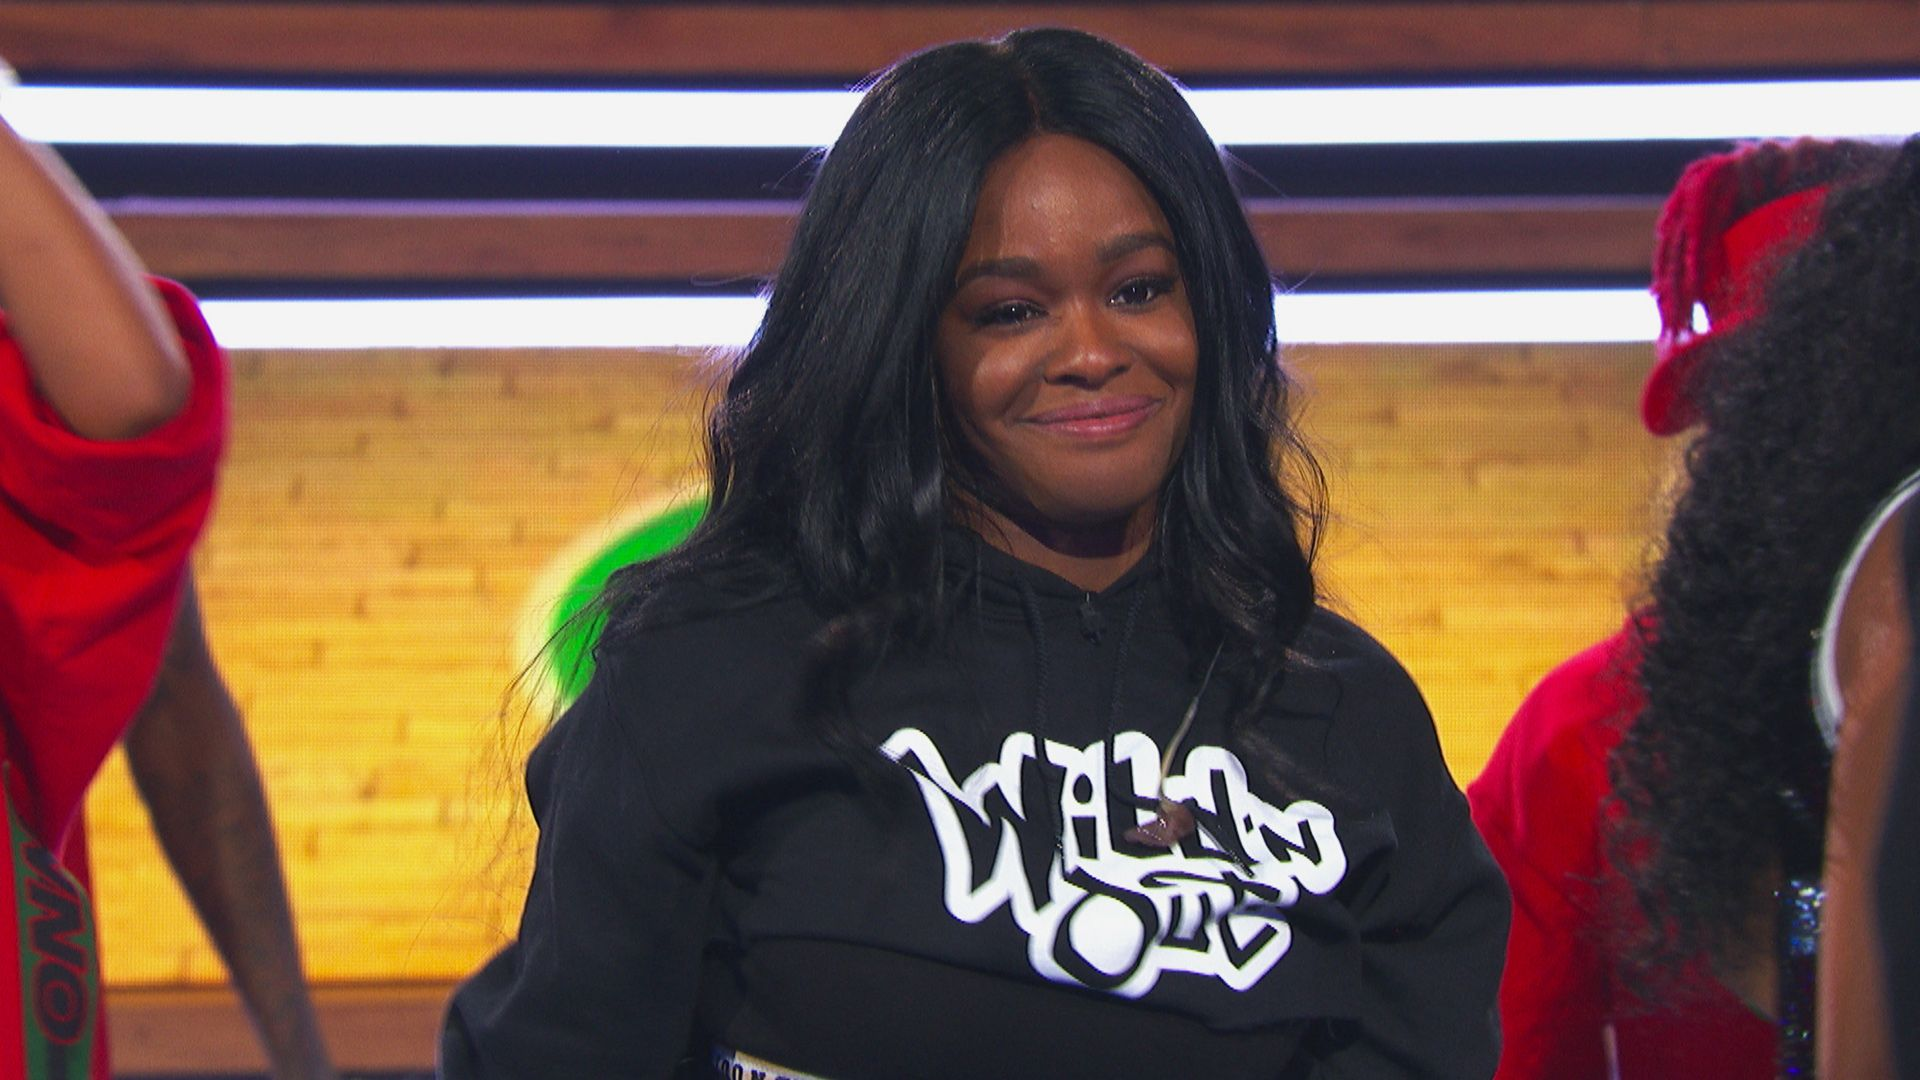 Nick Cannon Thanks Azealia Banks For Wild N Out Ratings Boost Full